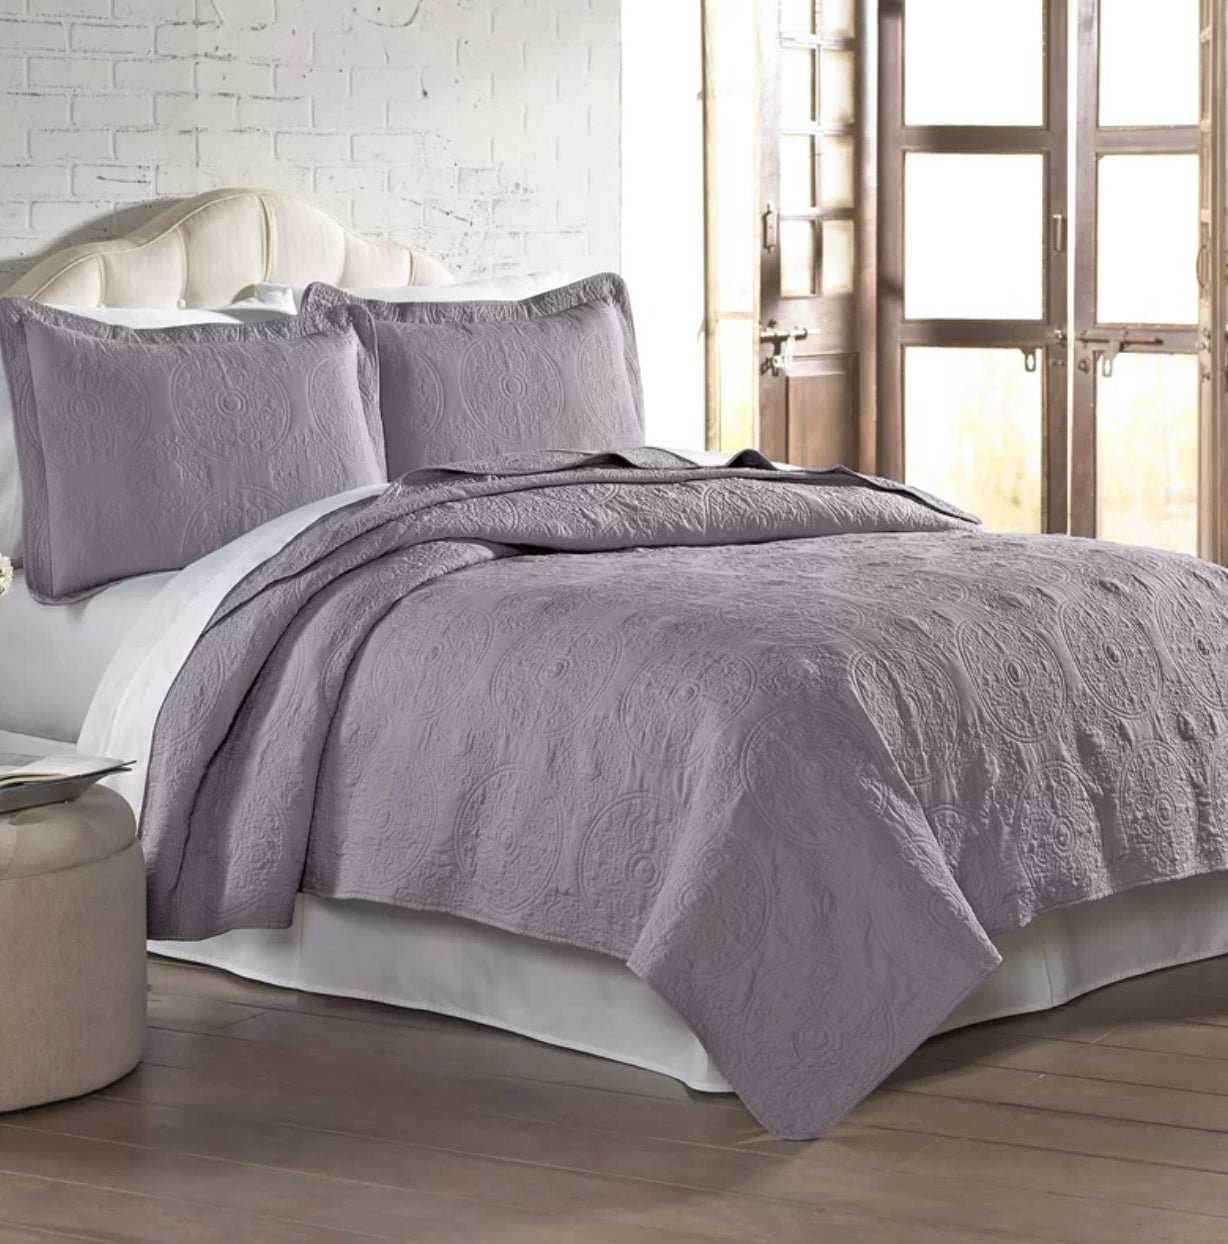 The quilt set in lavendar